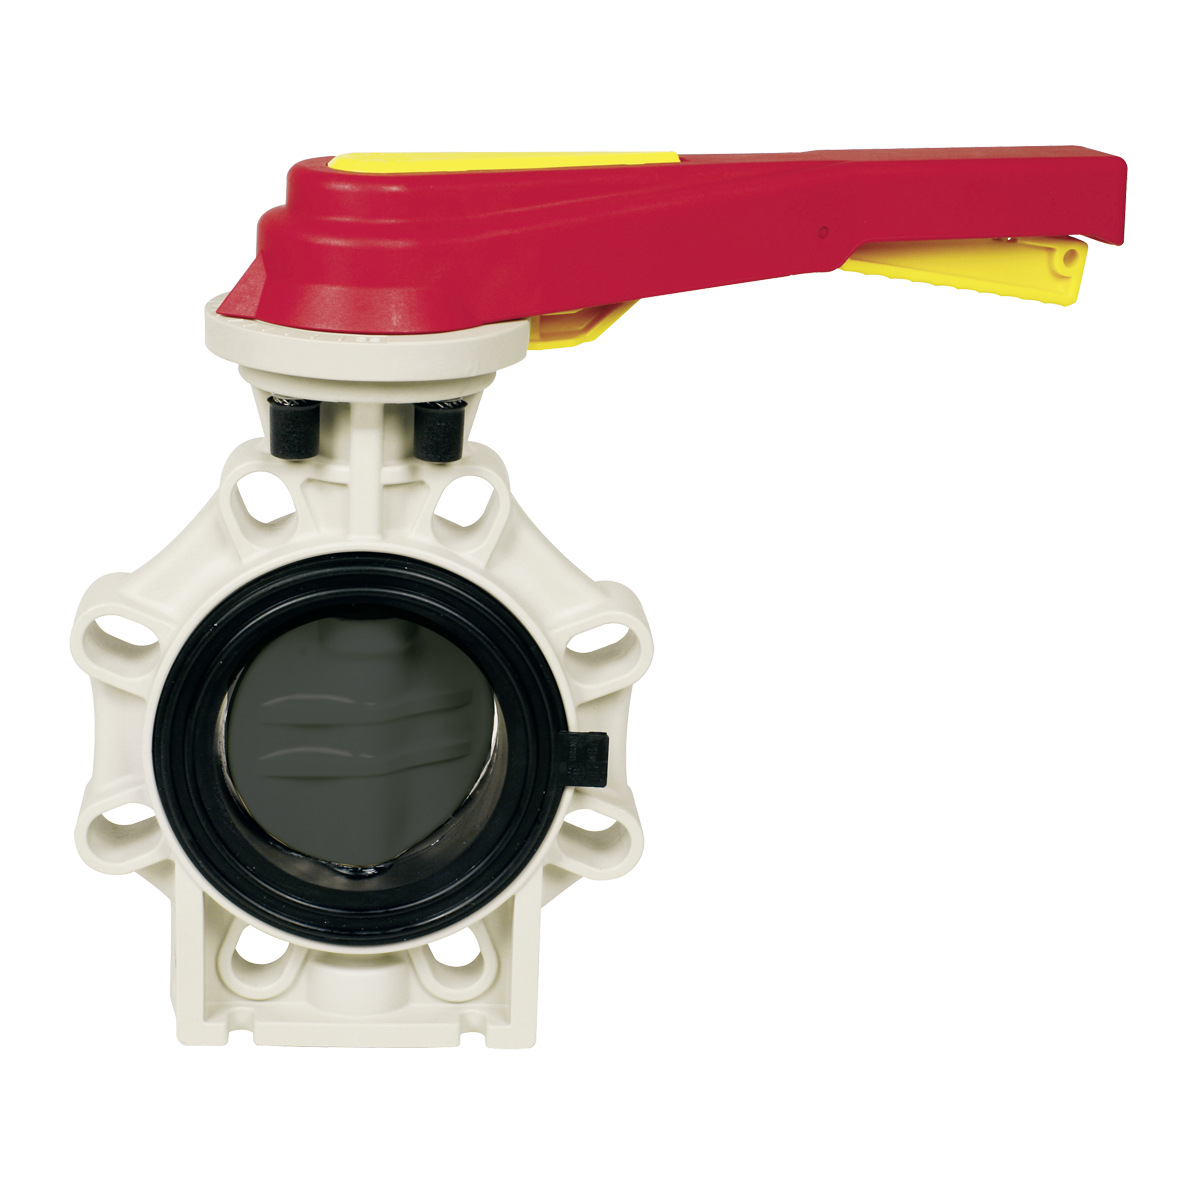 Praher butterfly valve K4 PVC, grey, red, yellow